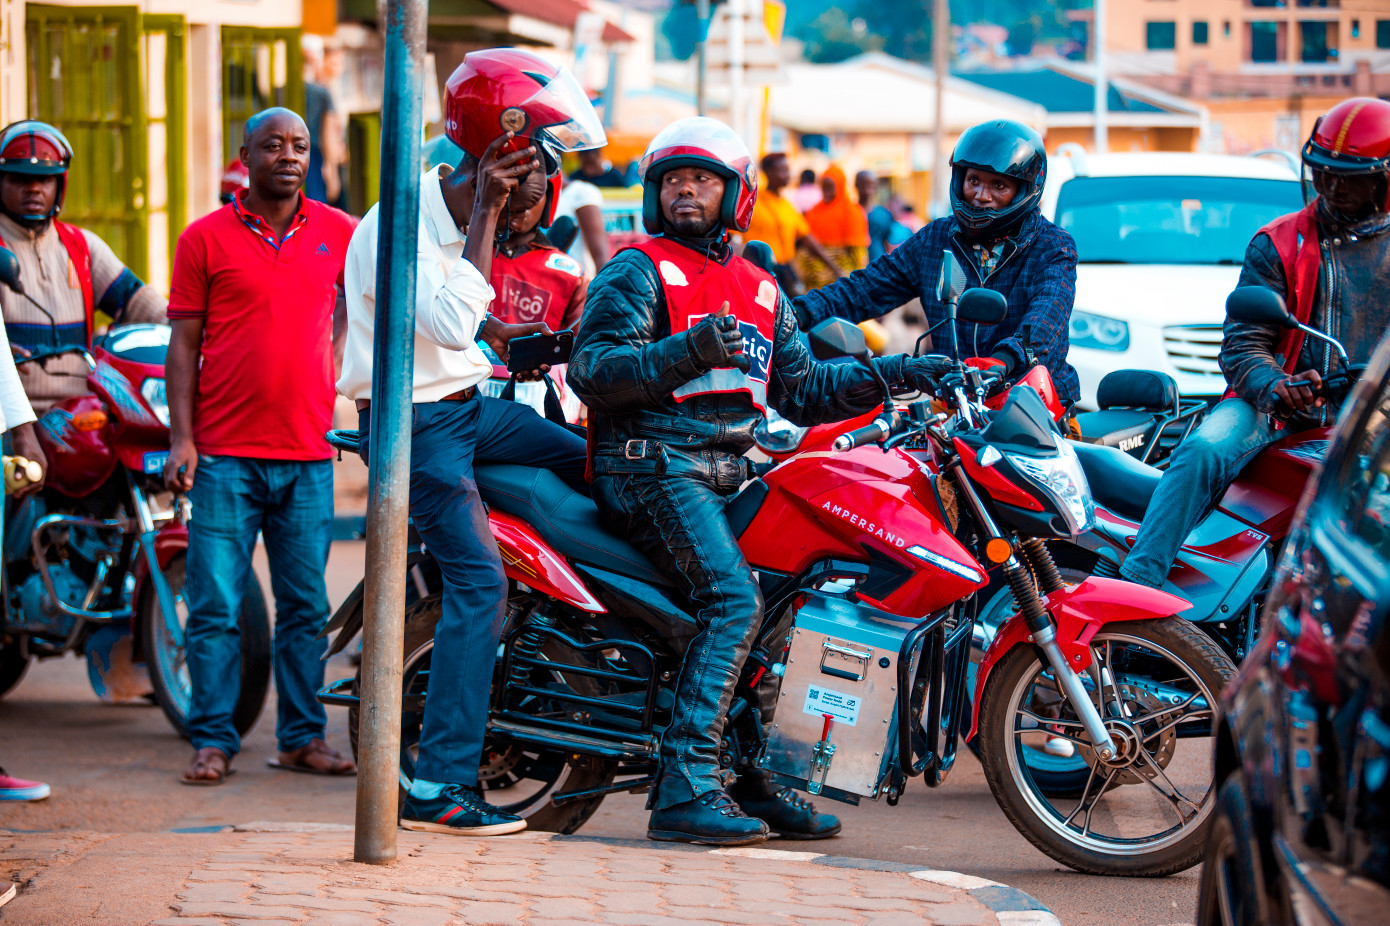 Rwanda aims to introduce electric motorcycles to address climate change concerns